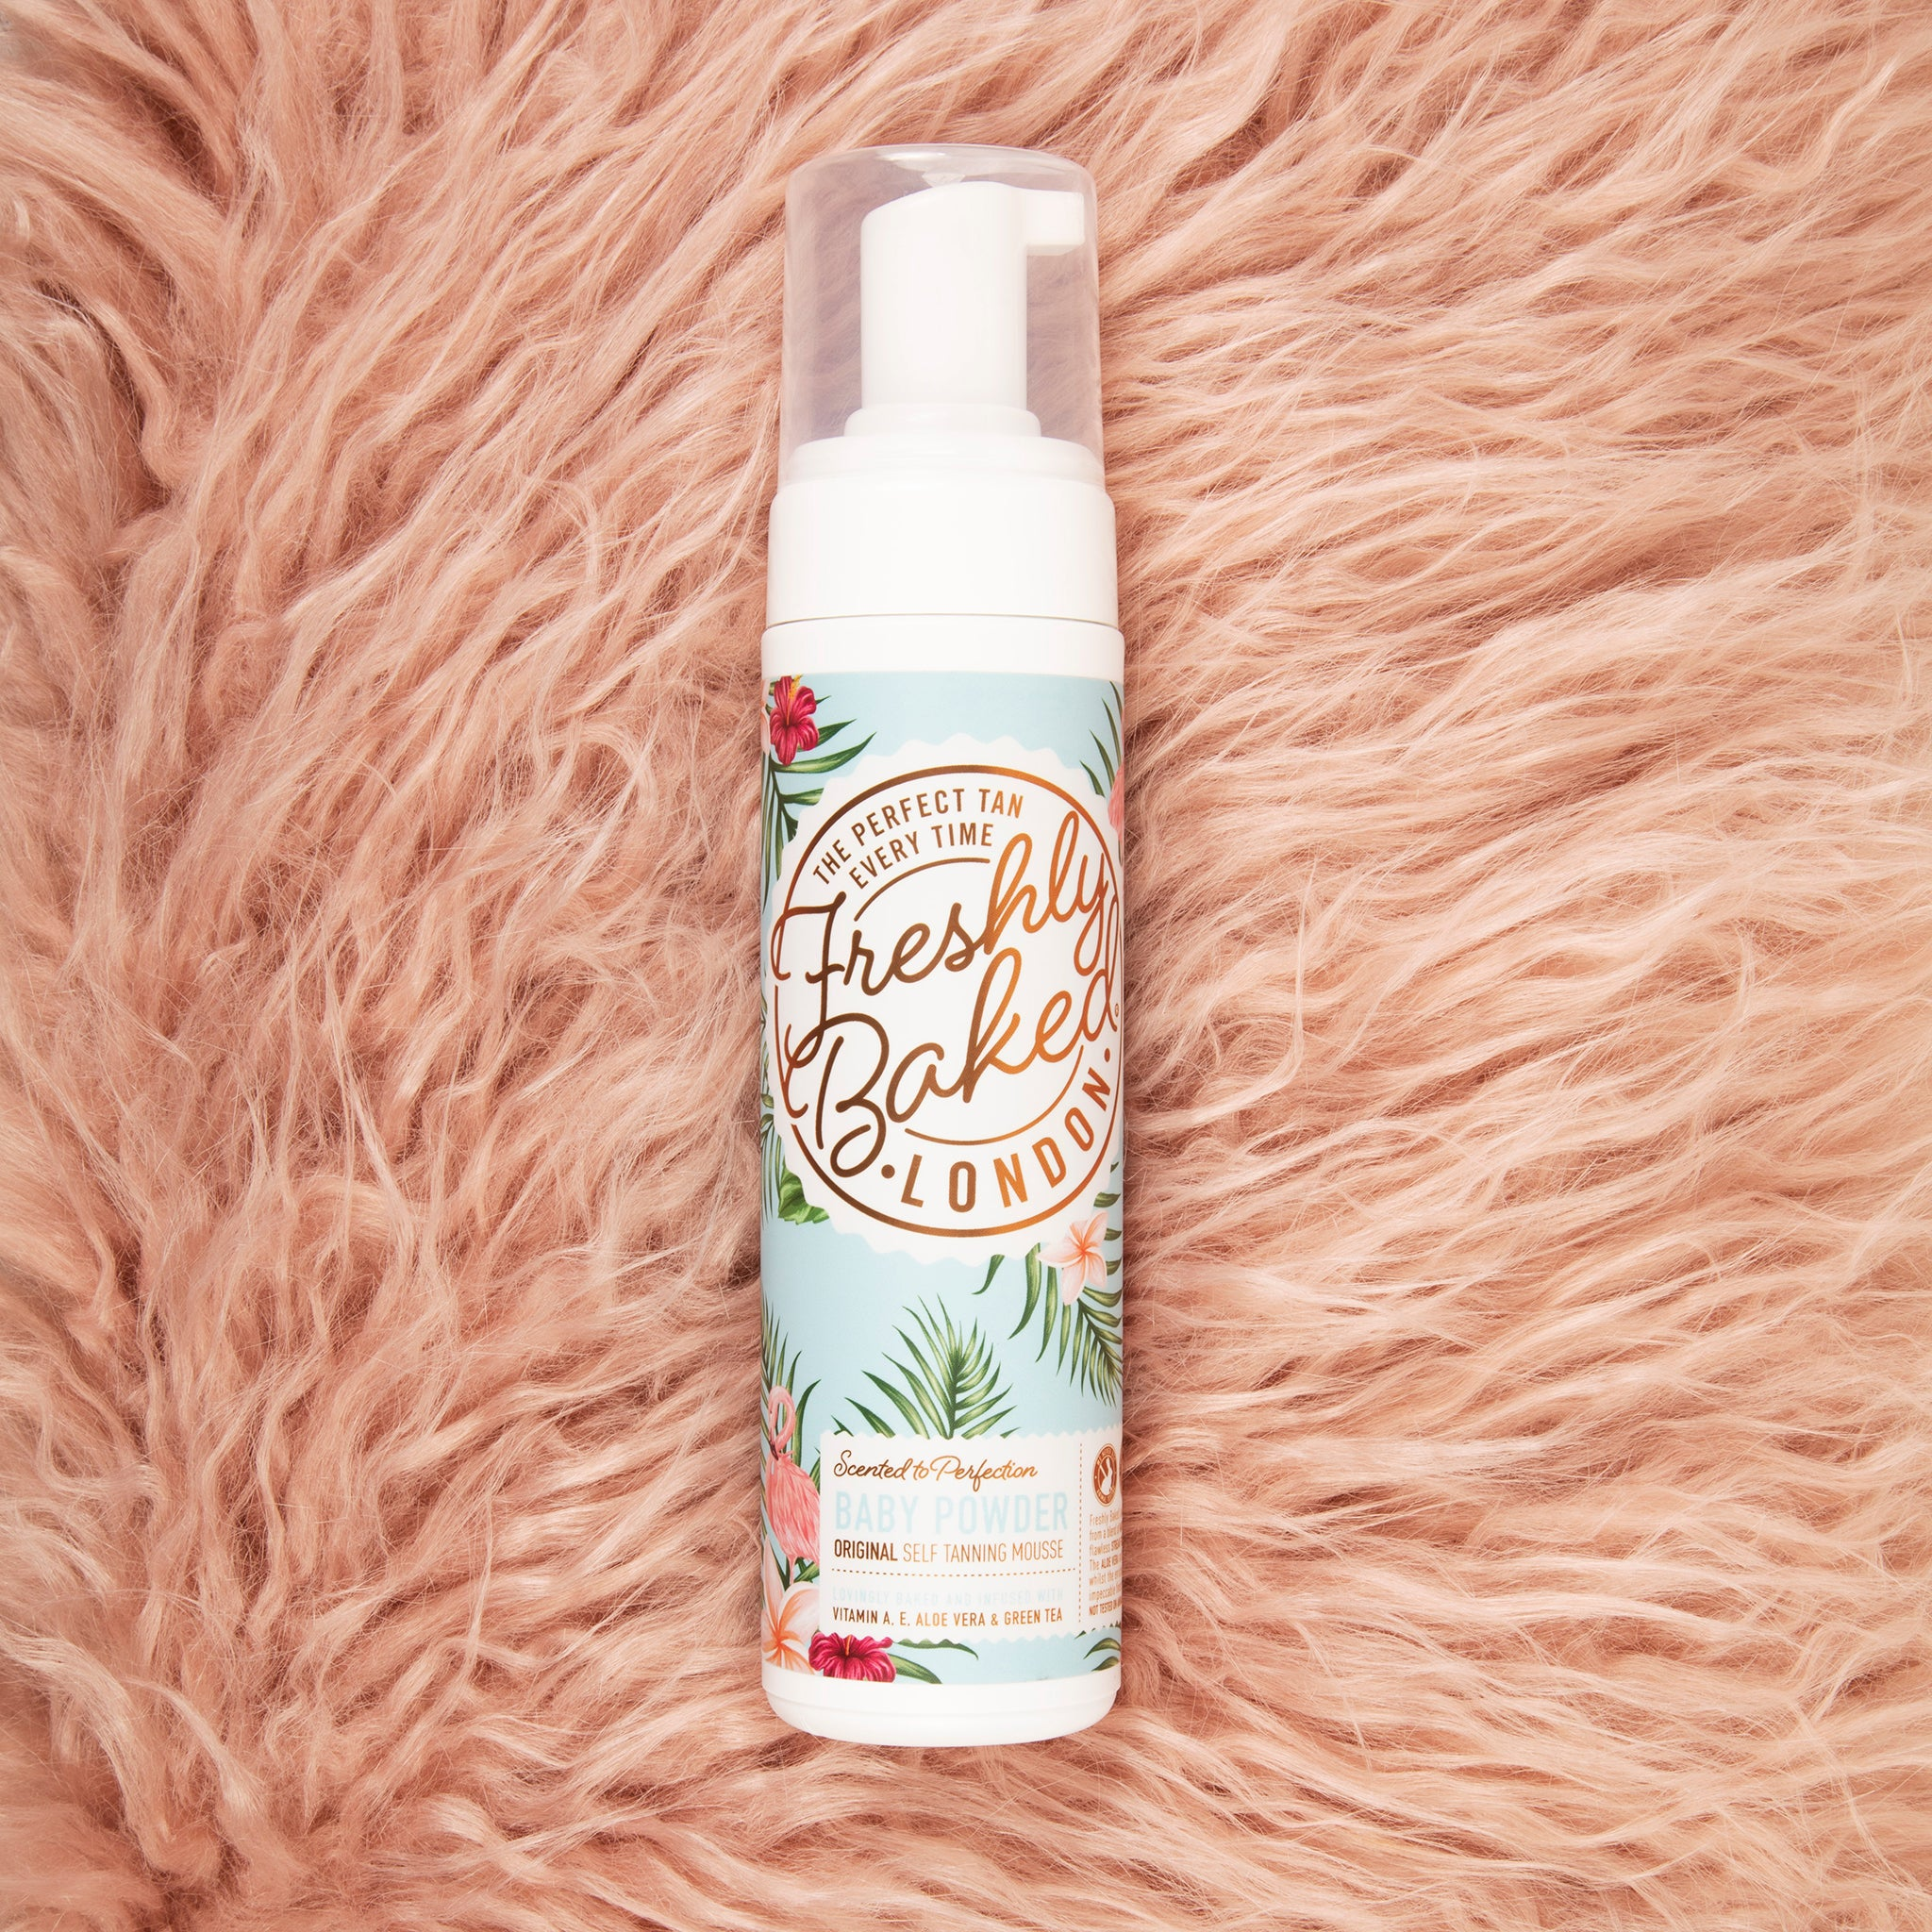 Original Baby Powder Scented Self Tan Mousse